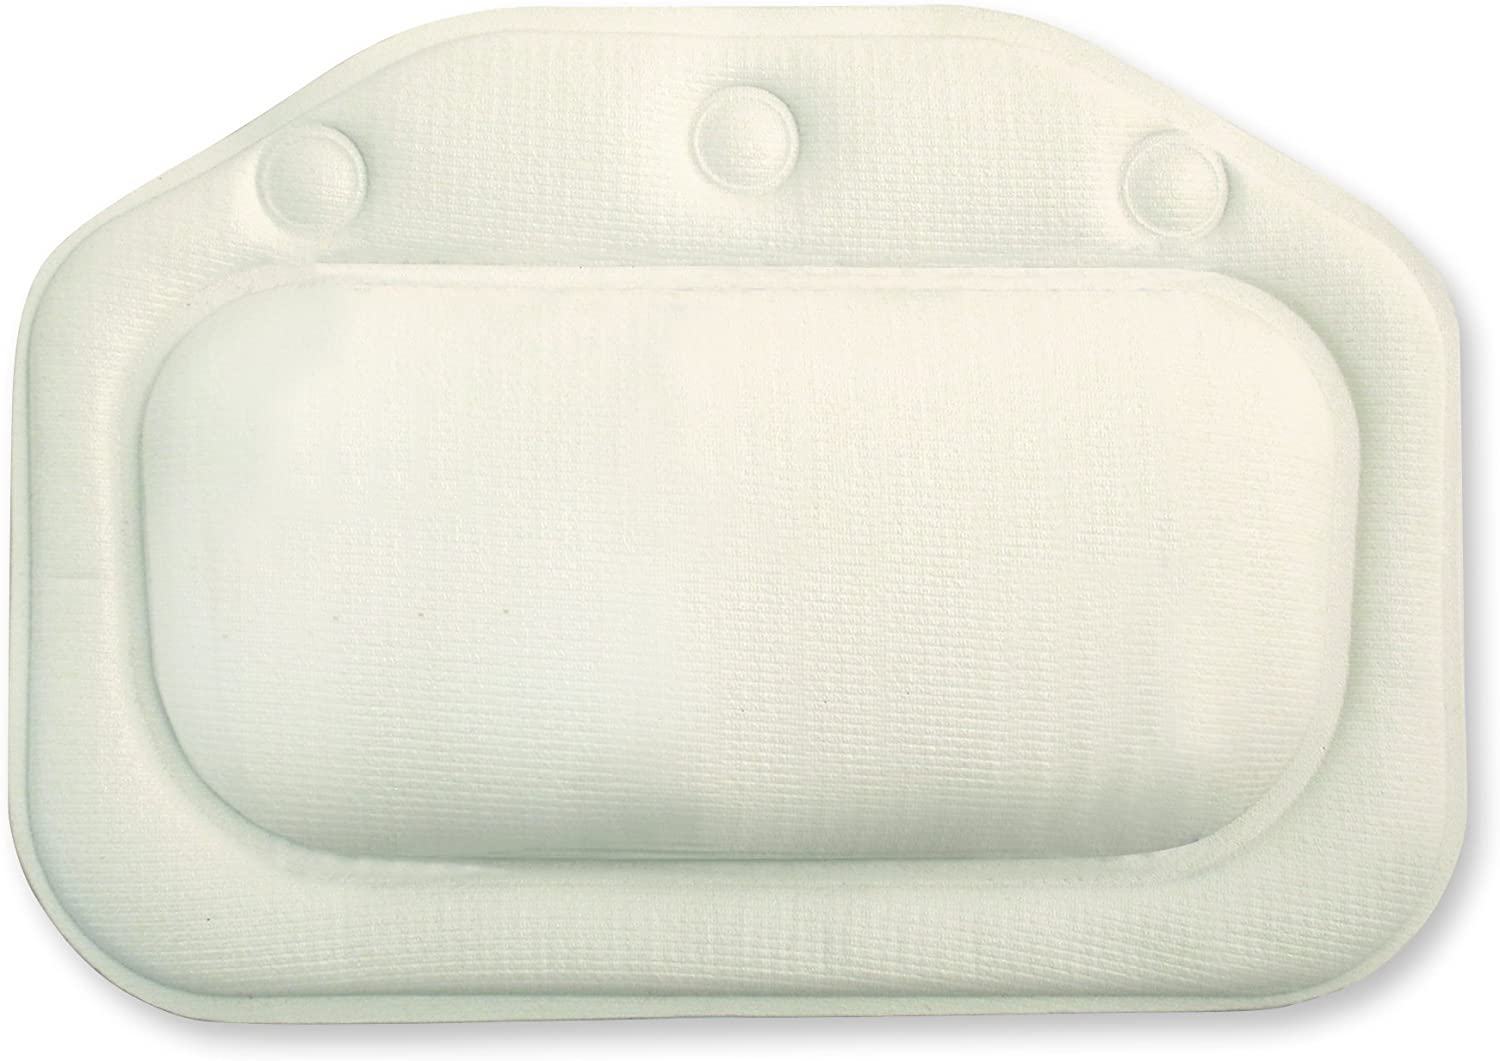 Croydex White Soft Cushioned Bath Ranking TOP2 with Pillow Cups Virginia Beach Mall Suction